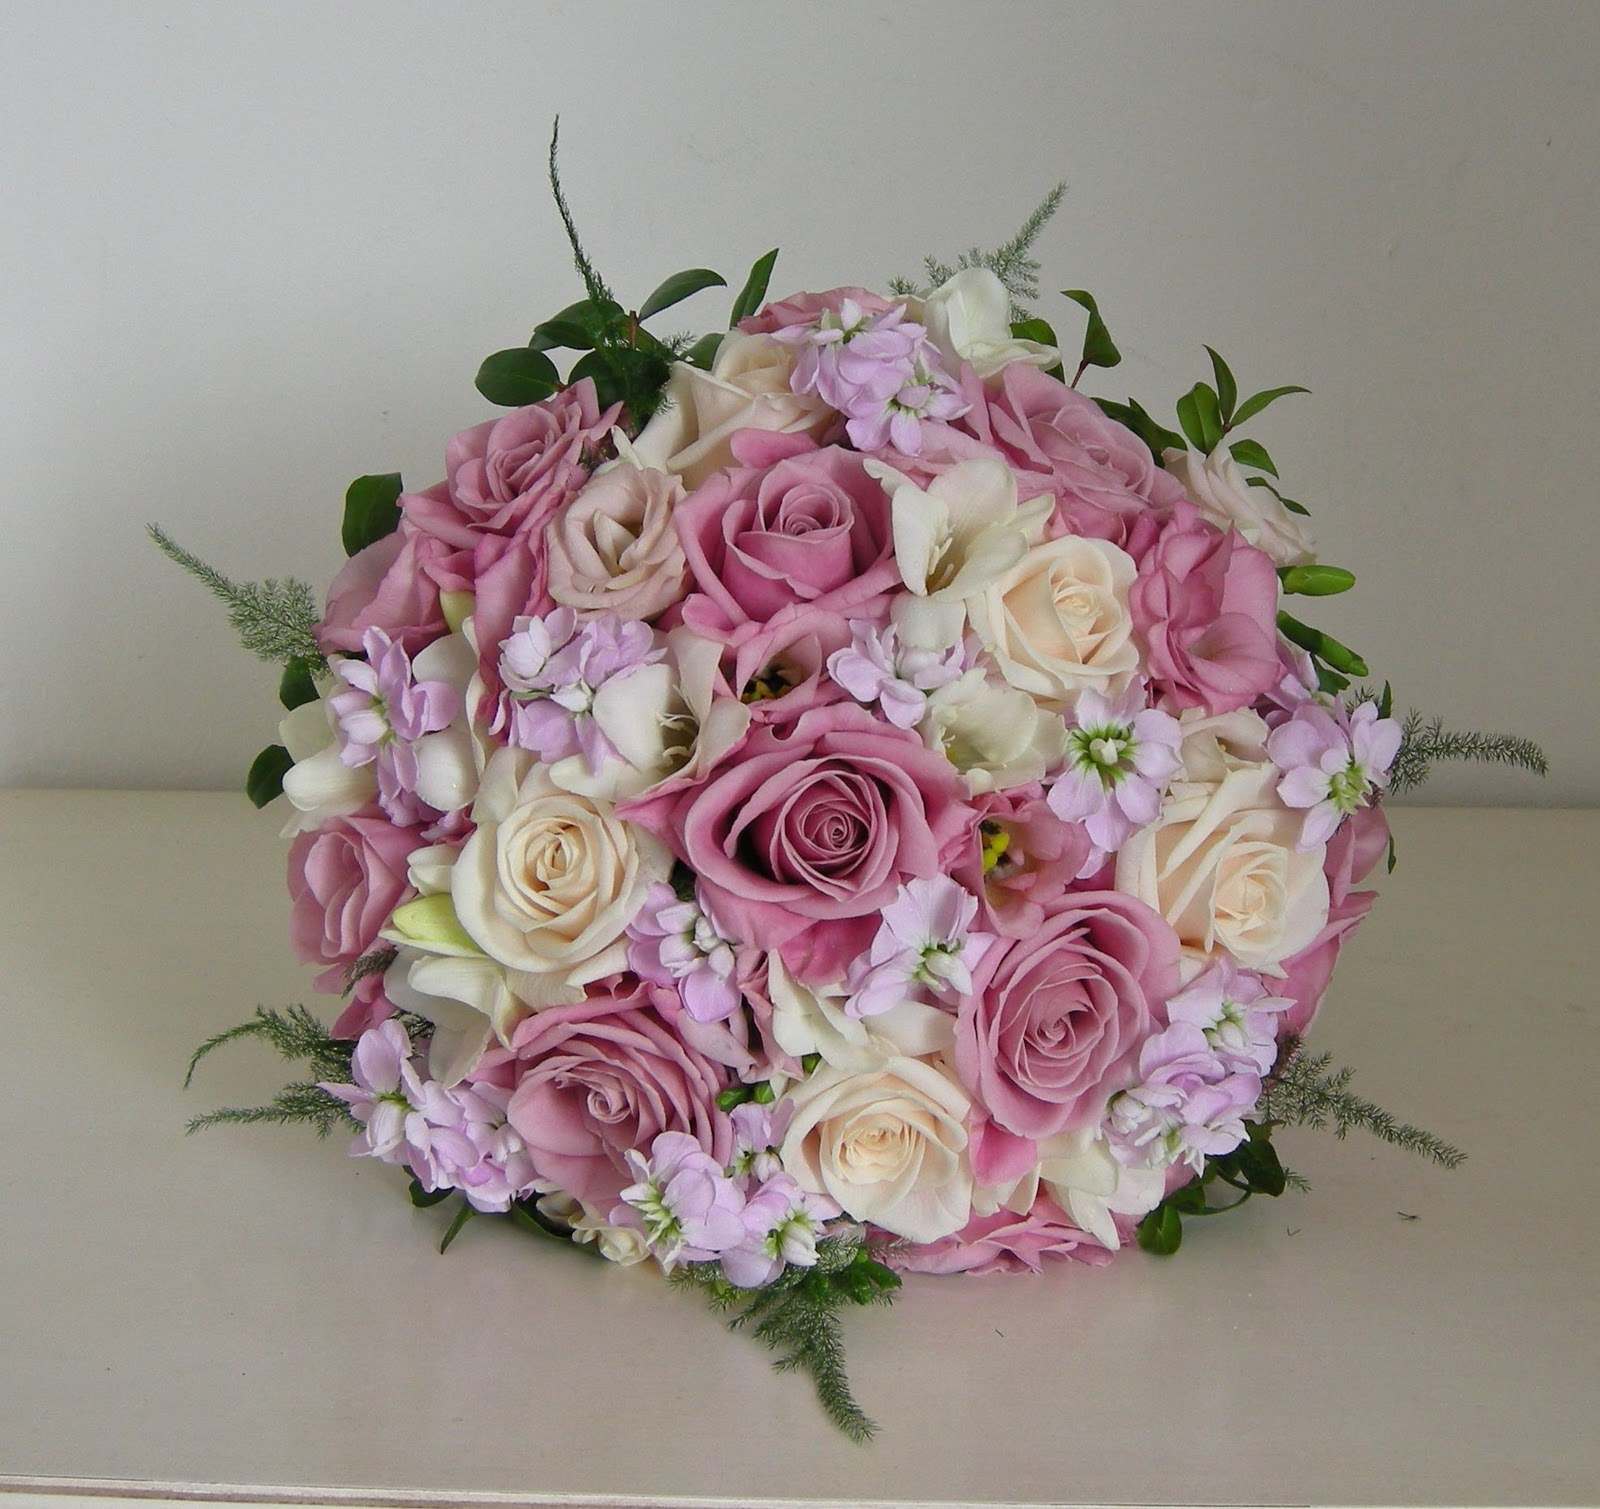 Pink Wedding Flowers: Wedding Flowers Blog: Sarah's Wedding Flowers, Warsash